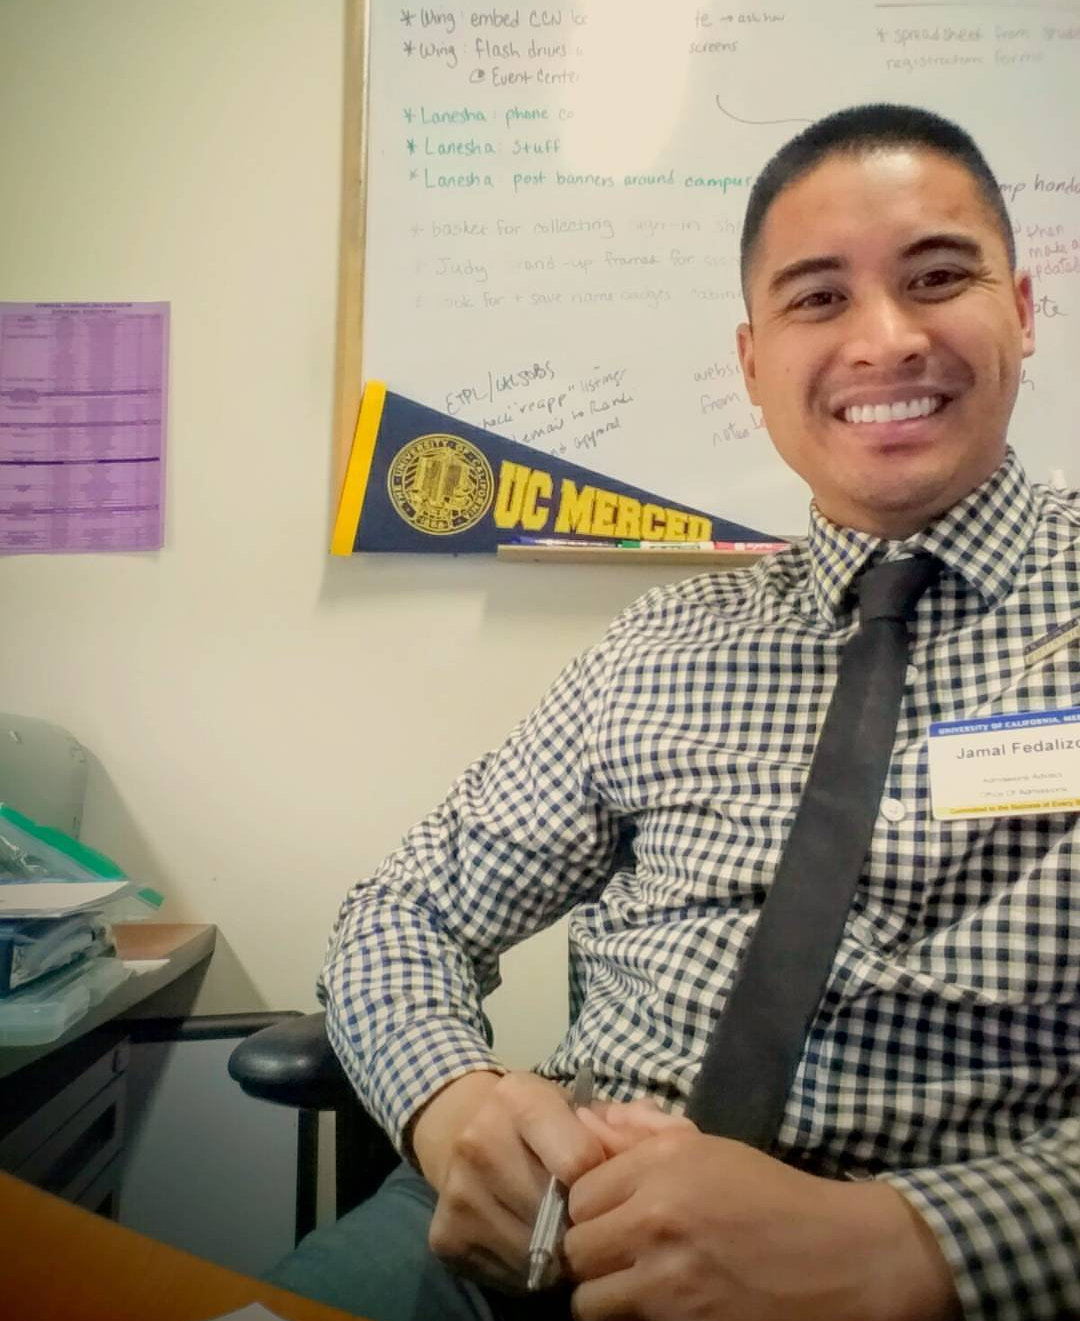 Jamal Fedalizo | Communications & Outreach Director  I believe in being ready for an ever changing world. Being a pioneer of one of UC Merced's first graduating classes, new worlds aren't foreign to me at all;they're my comfort zone. My major studies in the school of Social Sciences, Humanities and Arts led to a BA in Psychology. Additionally, my minor studies in Art were disciplined through my greatest pastimes: City Planning, Museum Curation, Photography and Sculpture. The backbone of my education kept me afloat in post grad experiences. I have elevated myself to management roles in all of my professions on the spectrum for the past 15 years;I'm your Renaissance Man! You're never going to learn until you try. Try. Fail. Try Again. Succeed. Teach. Learning is one of the fairest things in society.